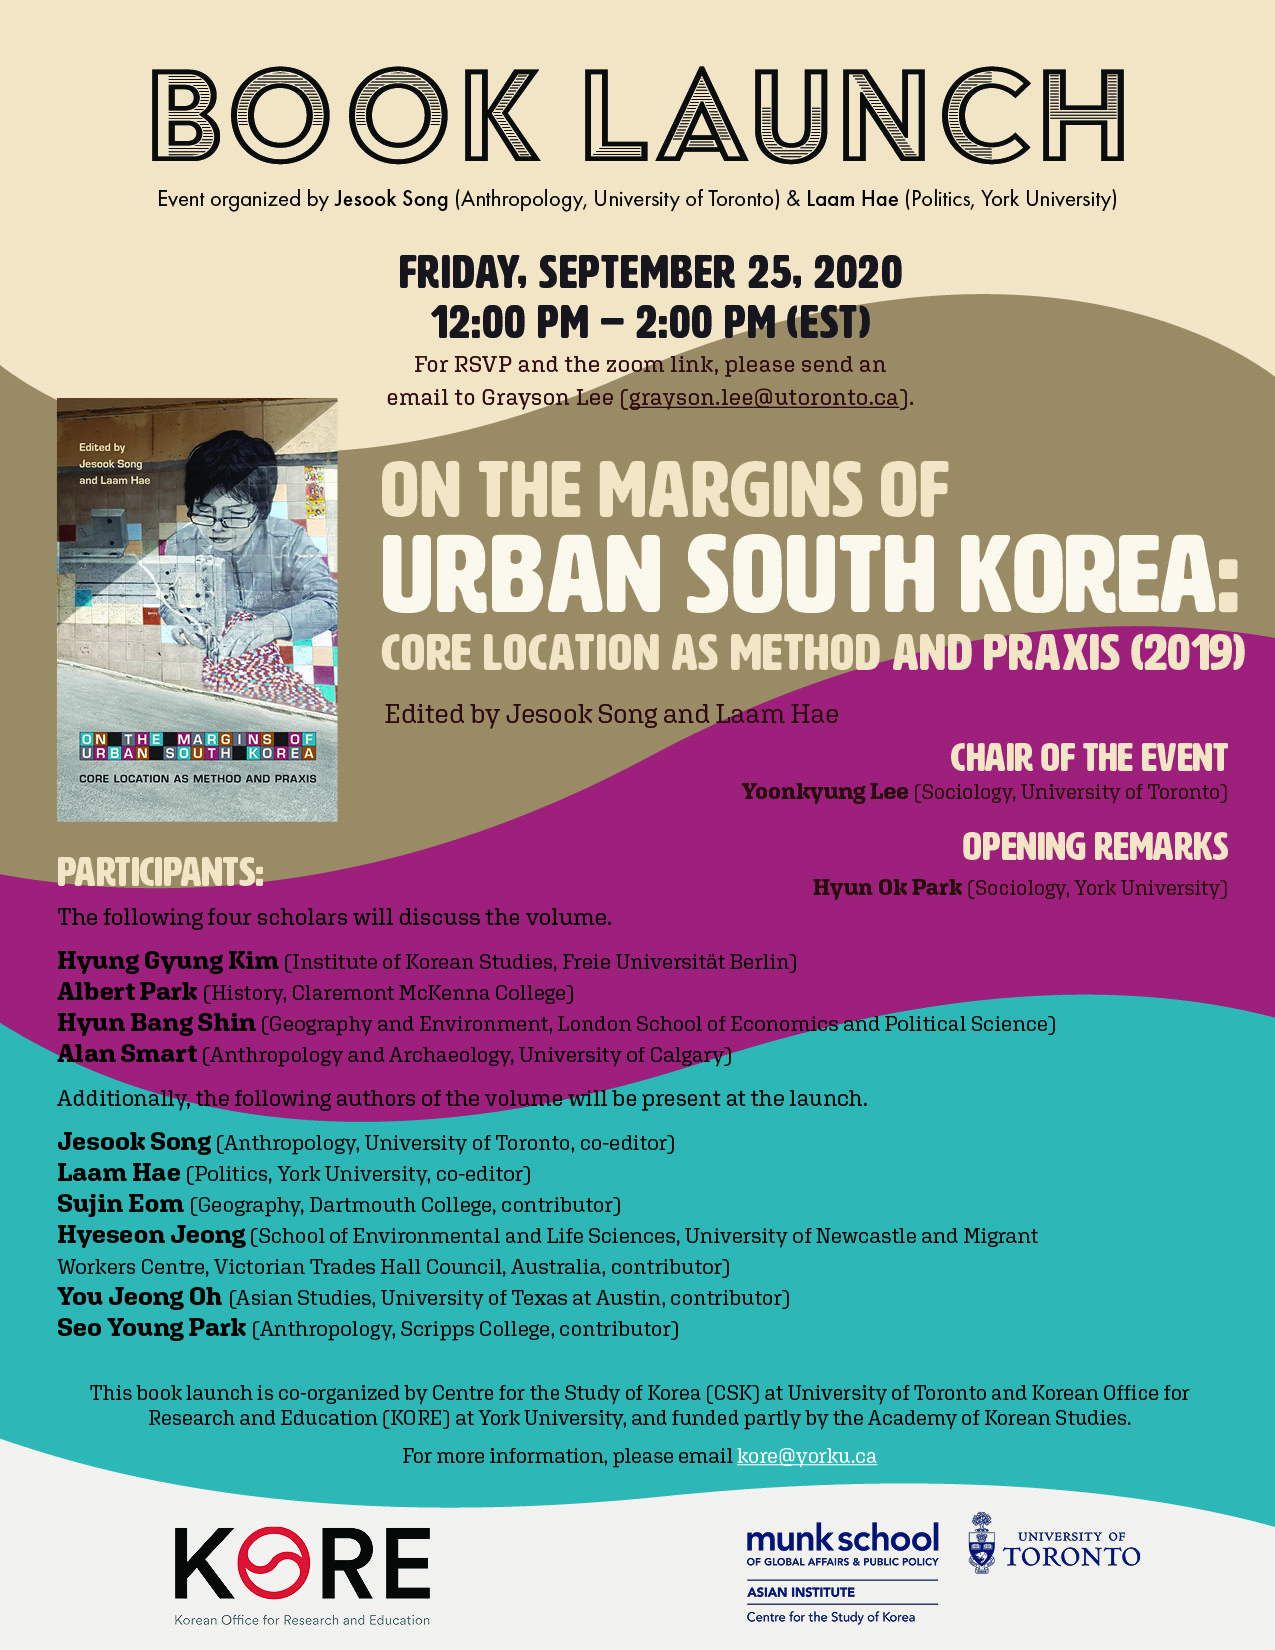 Book Launch | On the Margins of Urban South Korea: Core Location as Method and Praxis (2019, eds by Jesook Song and Laam Hae)